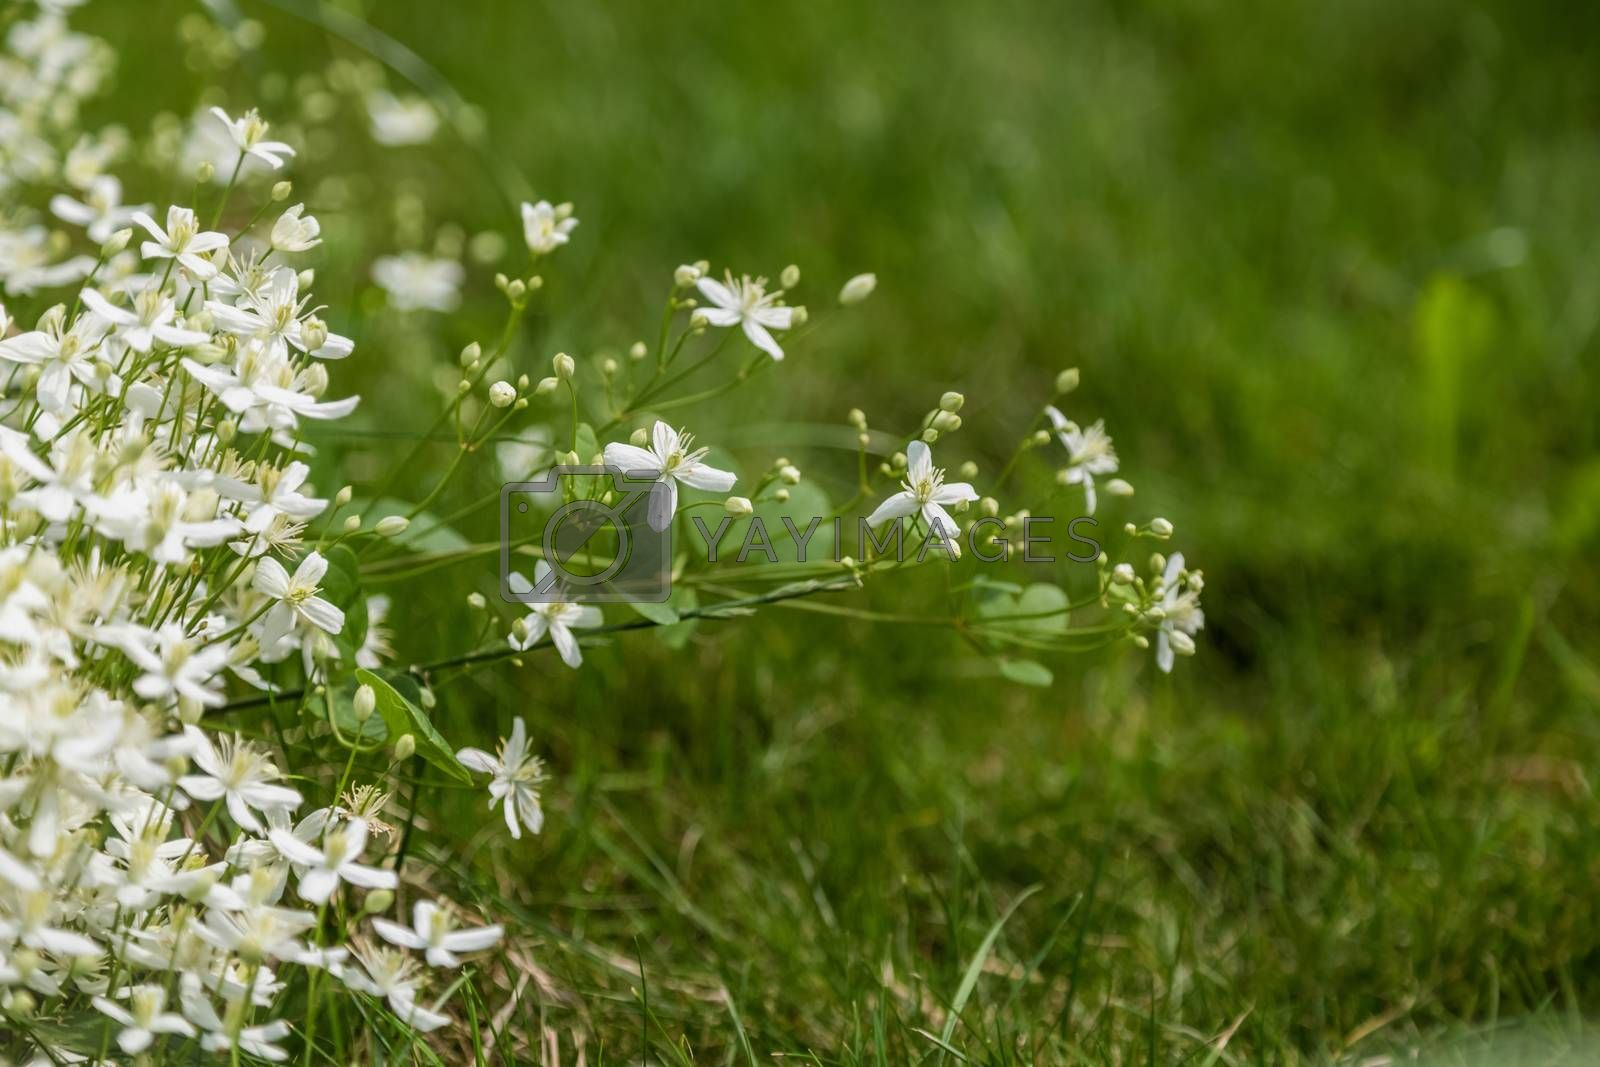 White climbing flowers in the garden of a country house. Summer beauty, place for text.